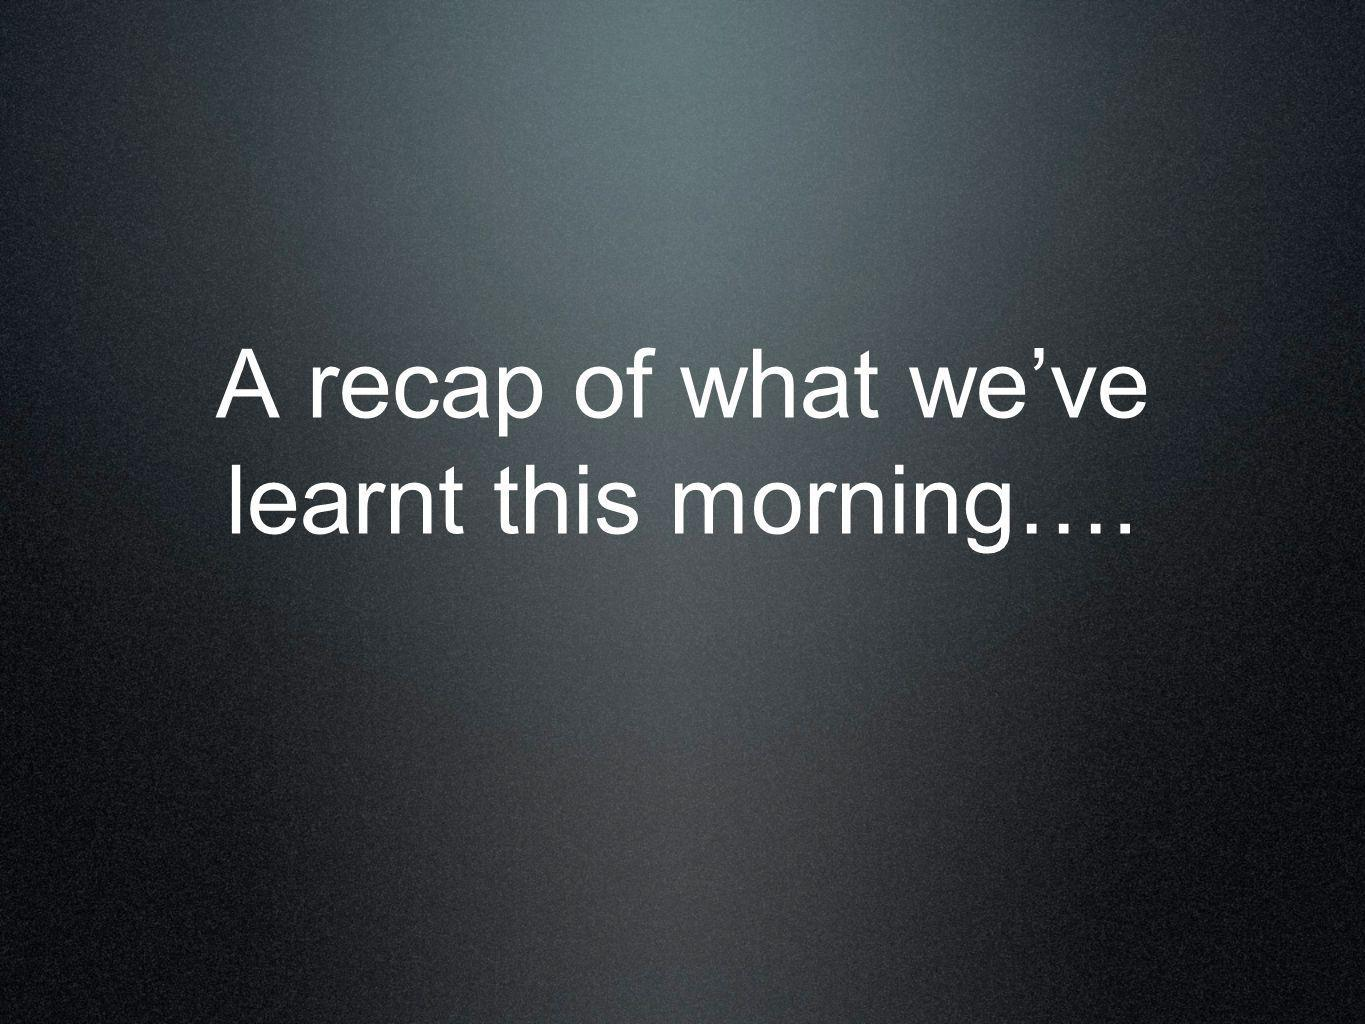 A recap of what we've learnt this morning….